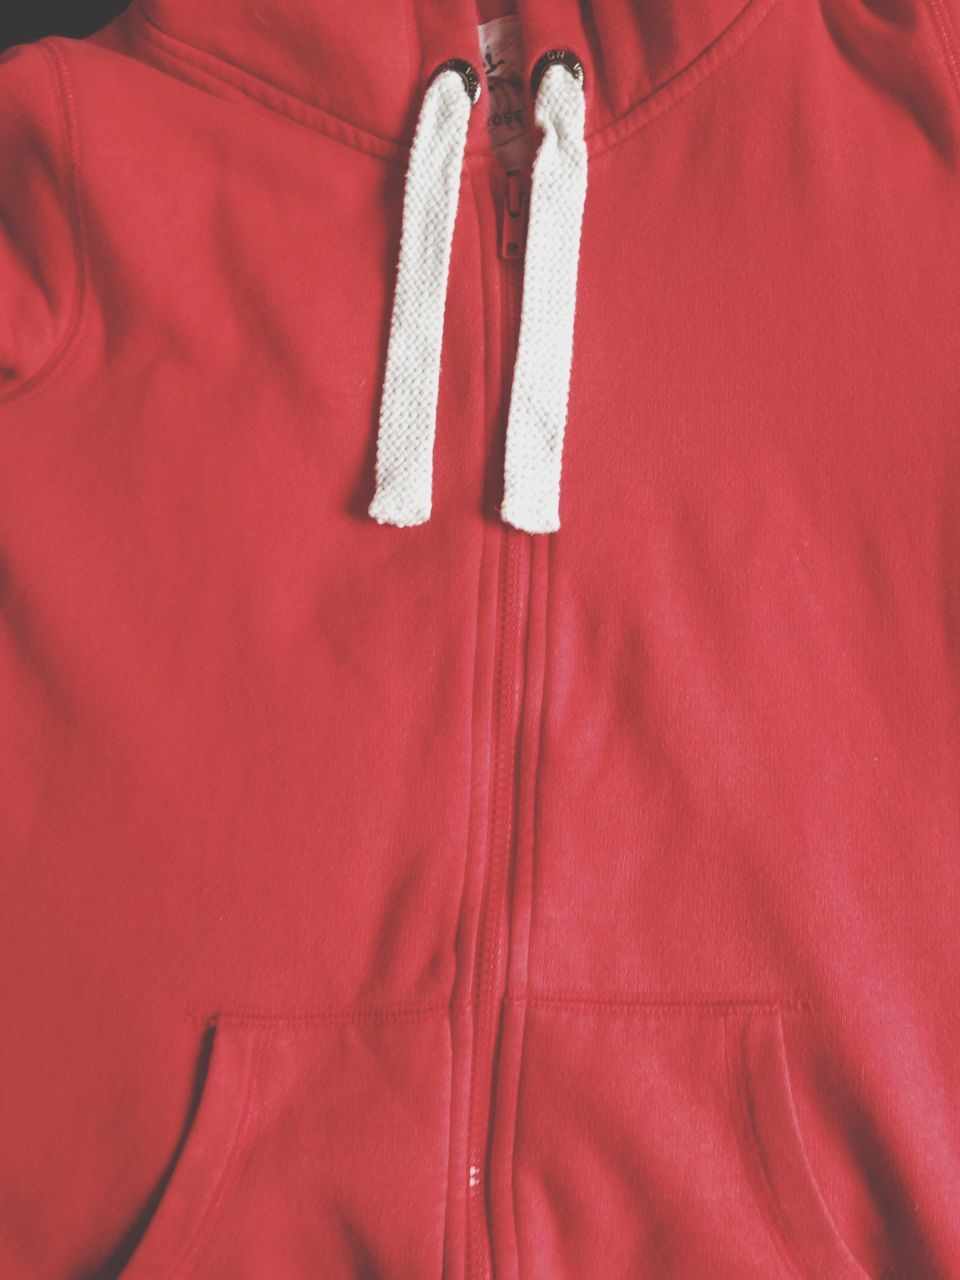 Directly Above Shot Of Red Hooded Shirt